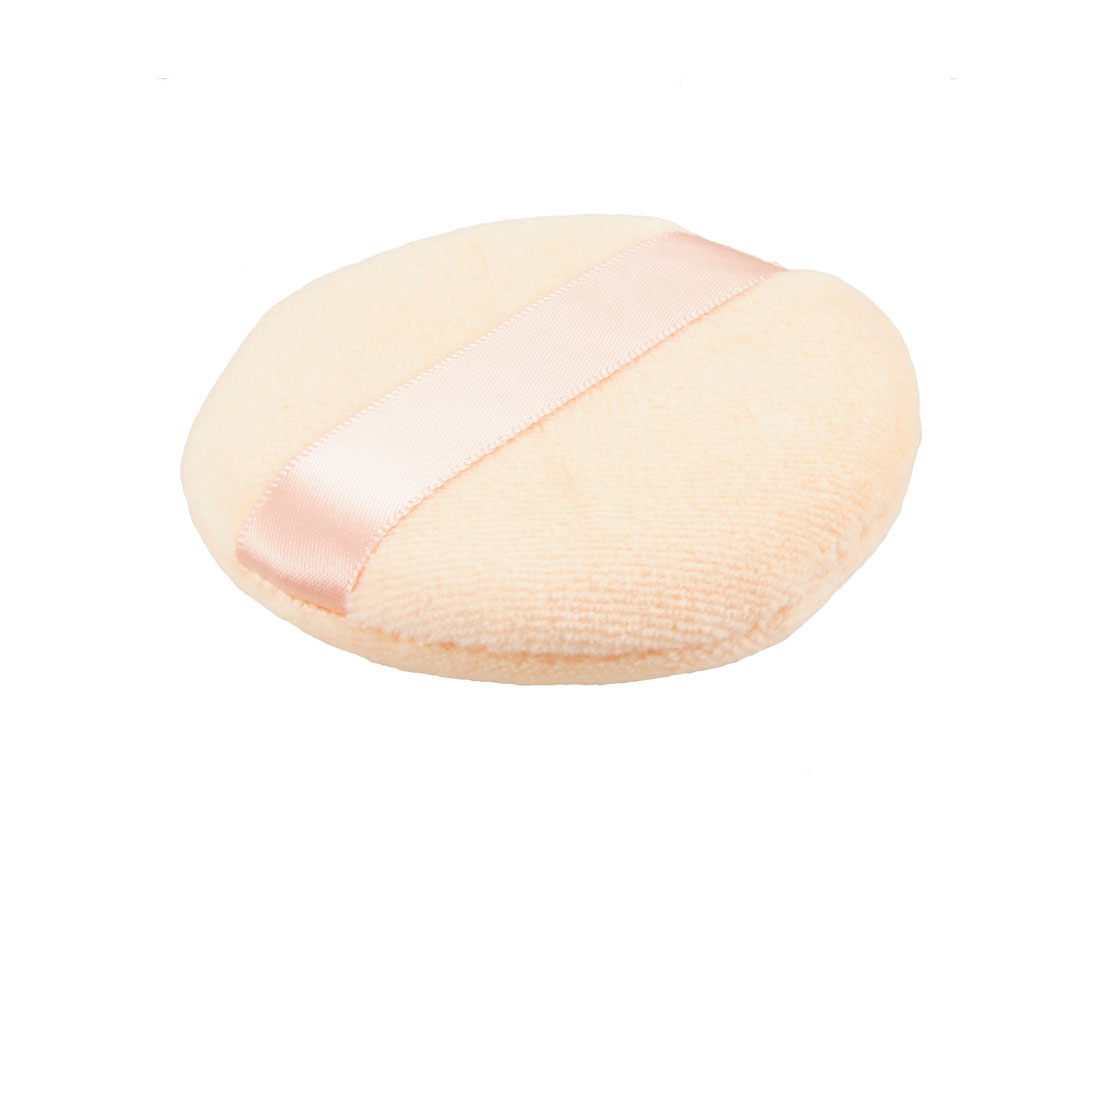 Ladies Round Shape Face Sponge Makeup Cosmetic Powder Puff